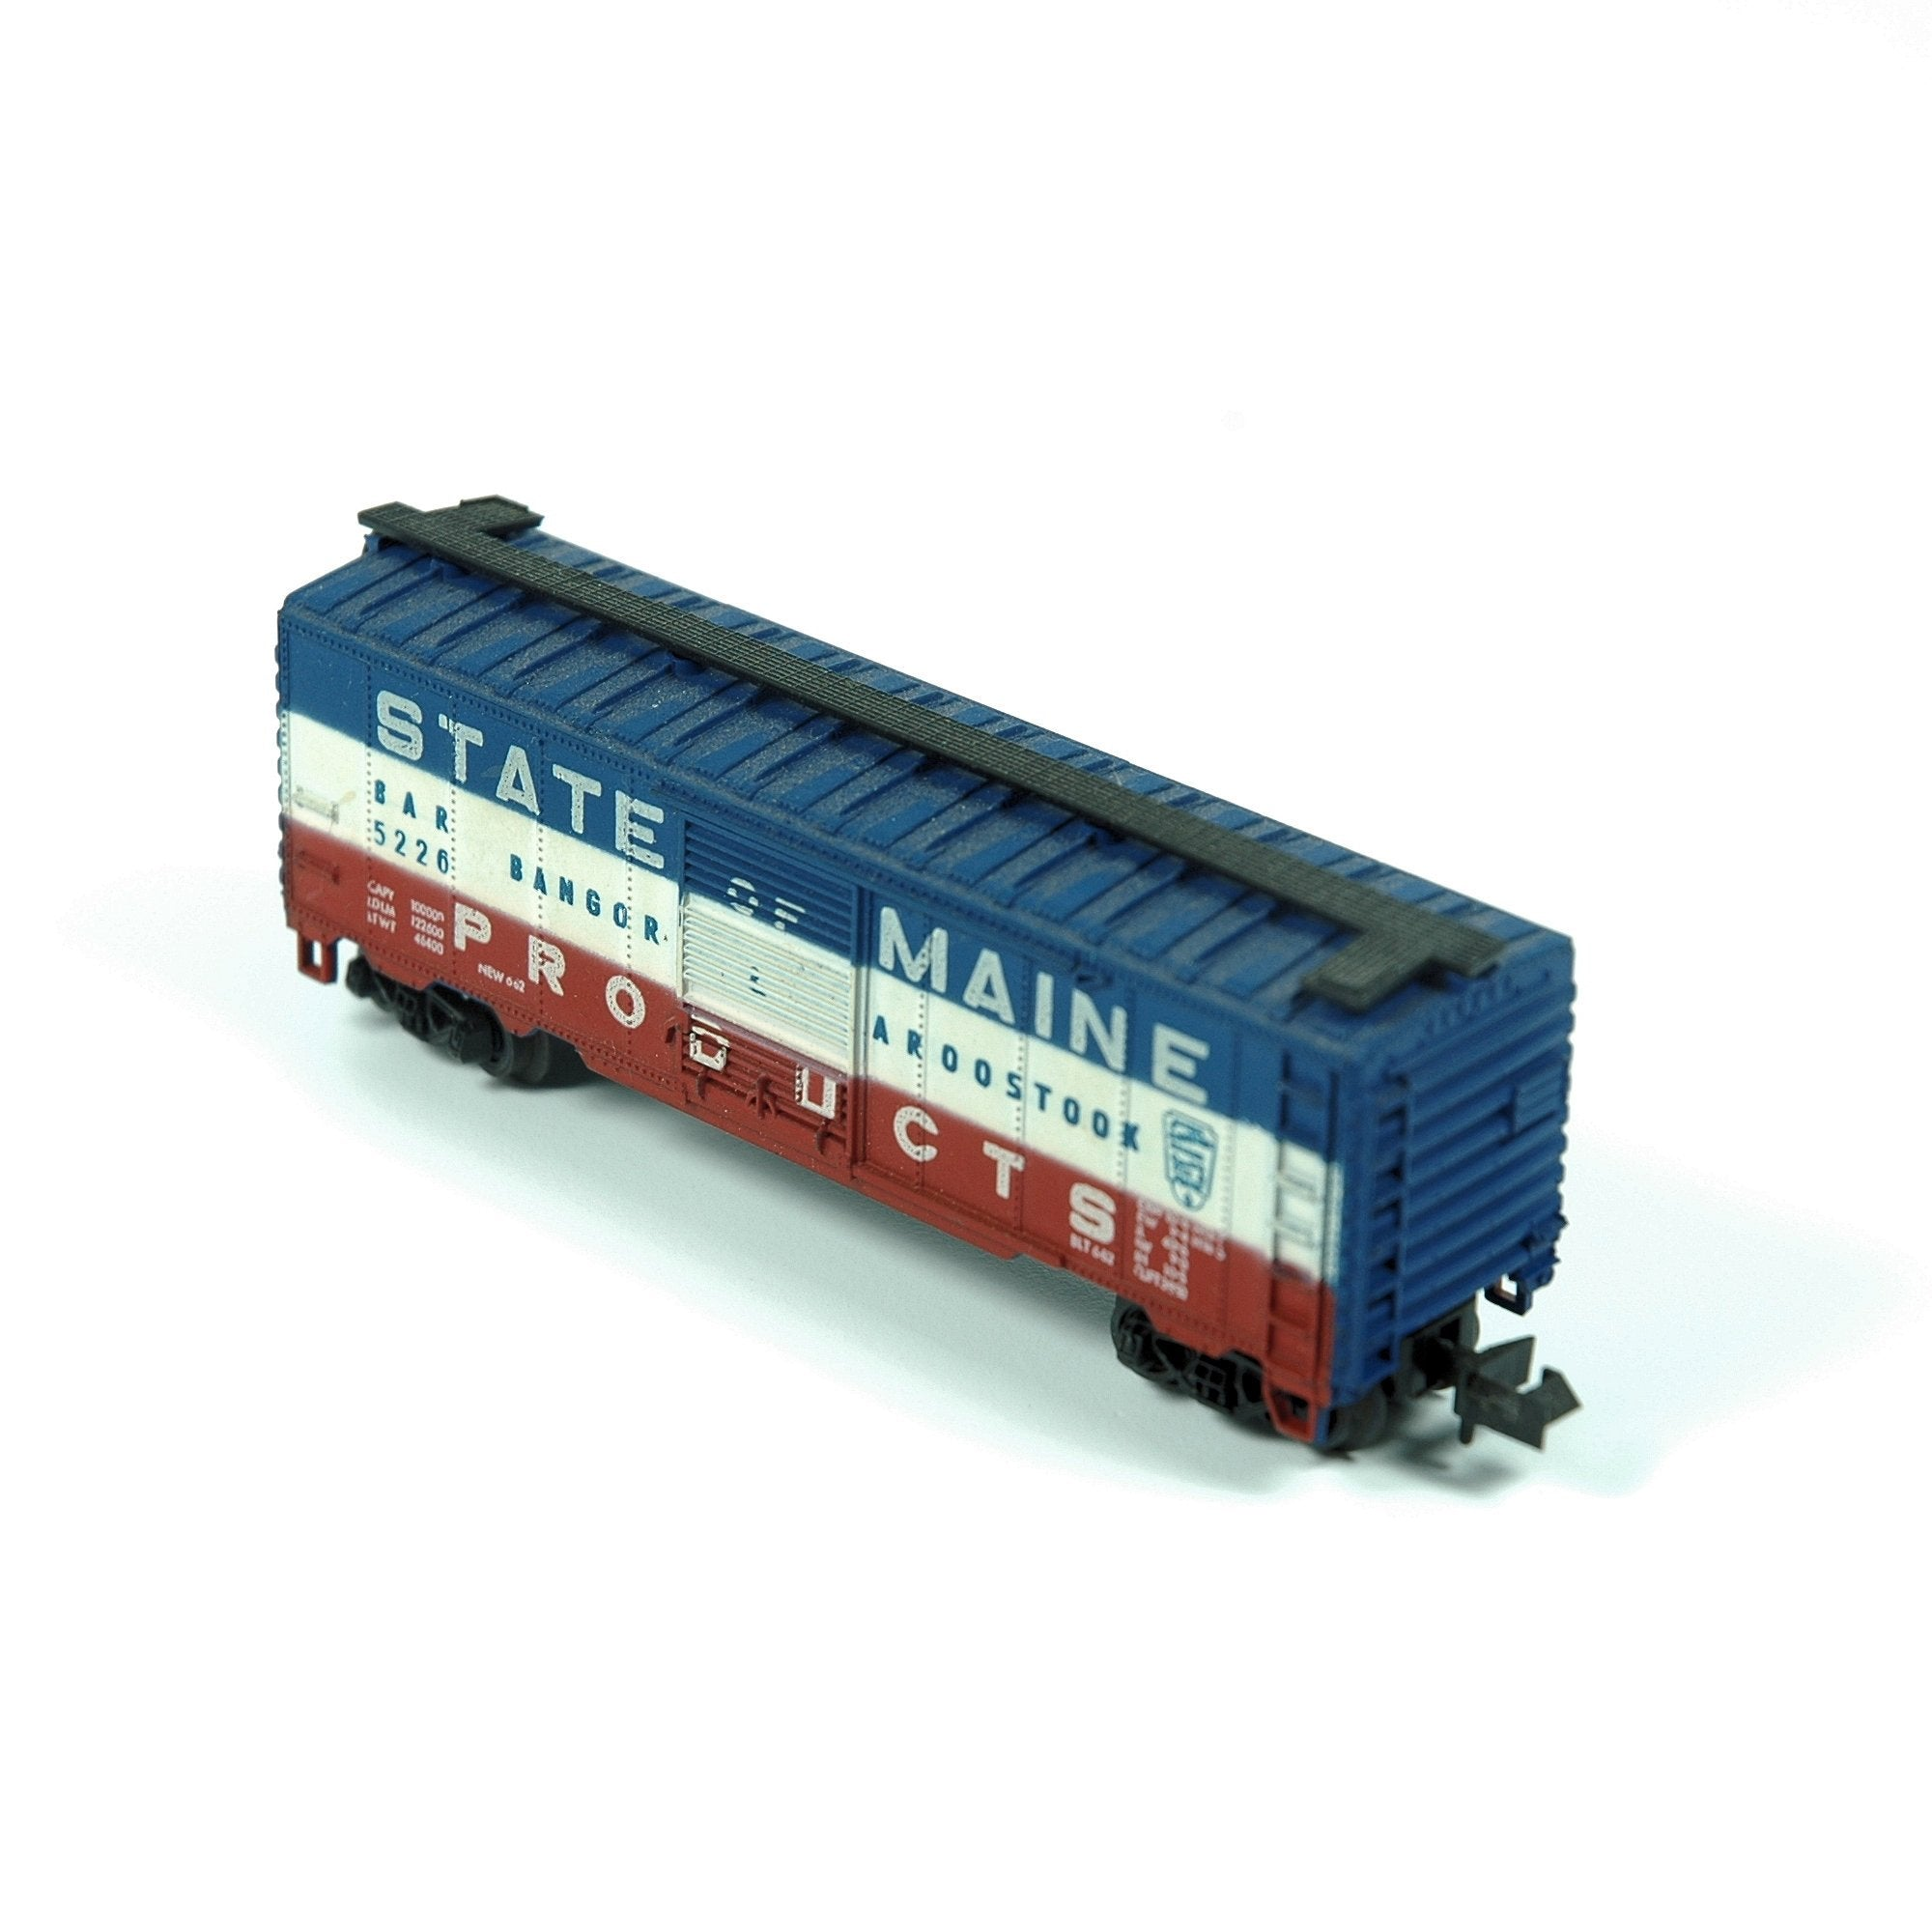 Model Train Atlas N-Scale Bangor Aroostook Box Car 5226